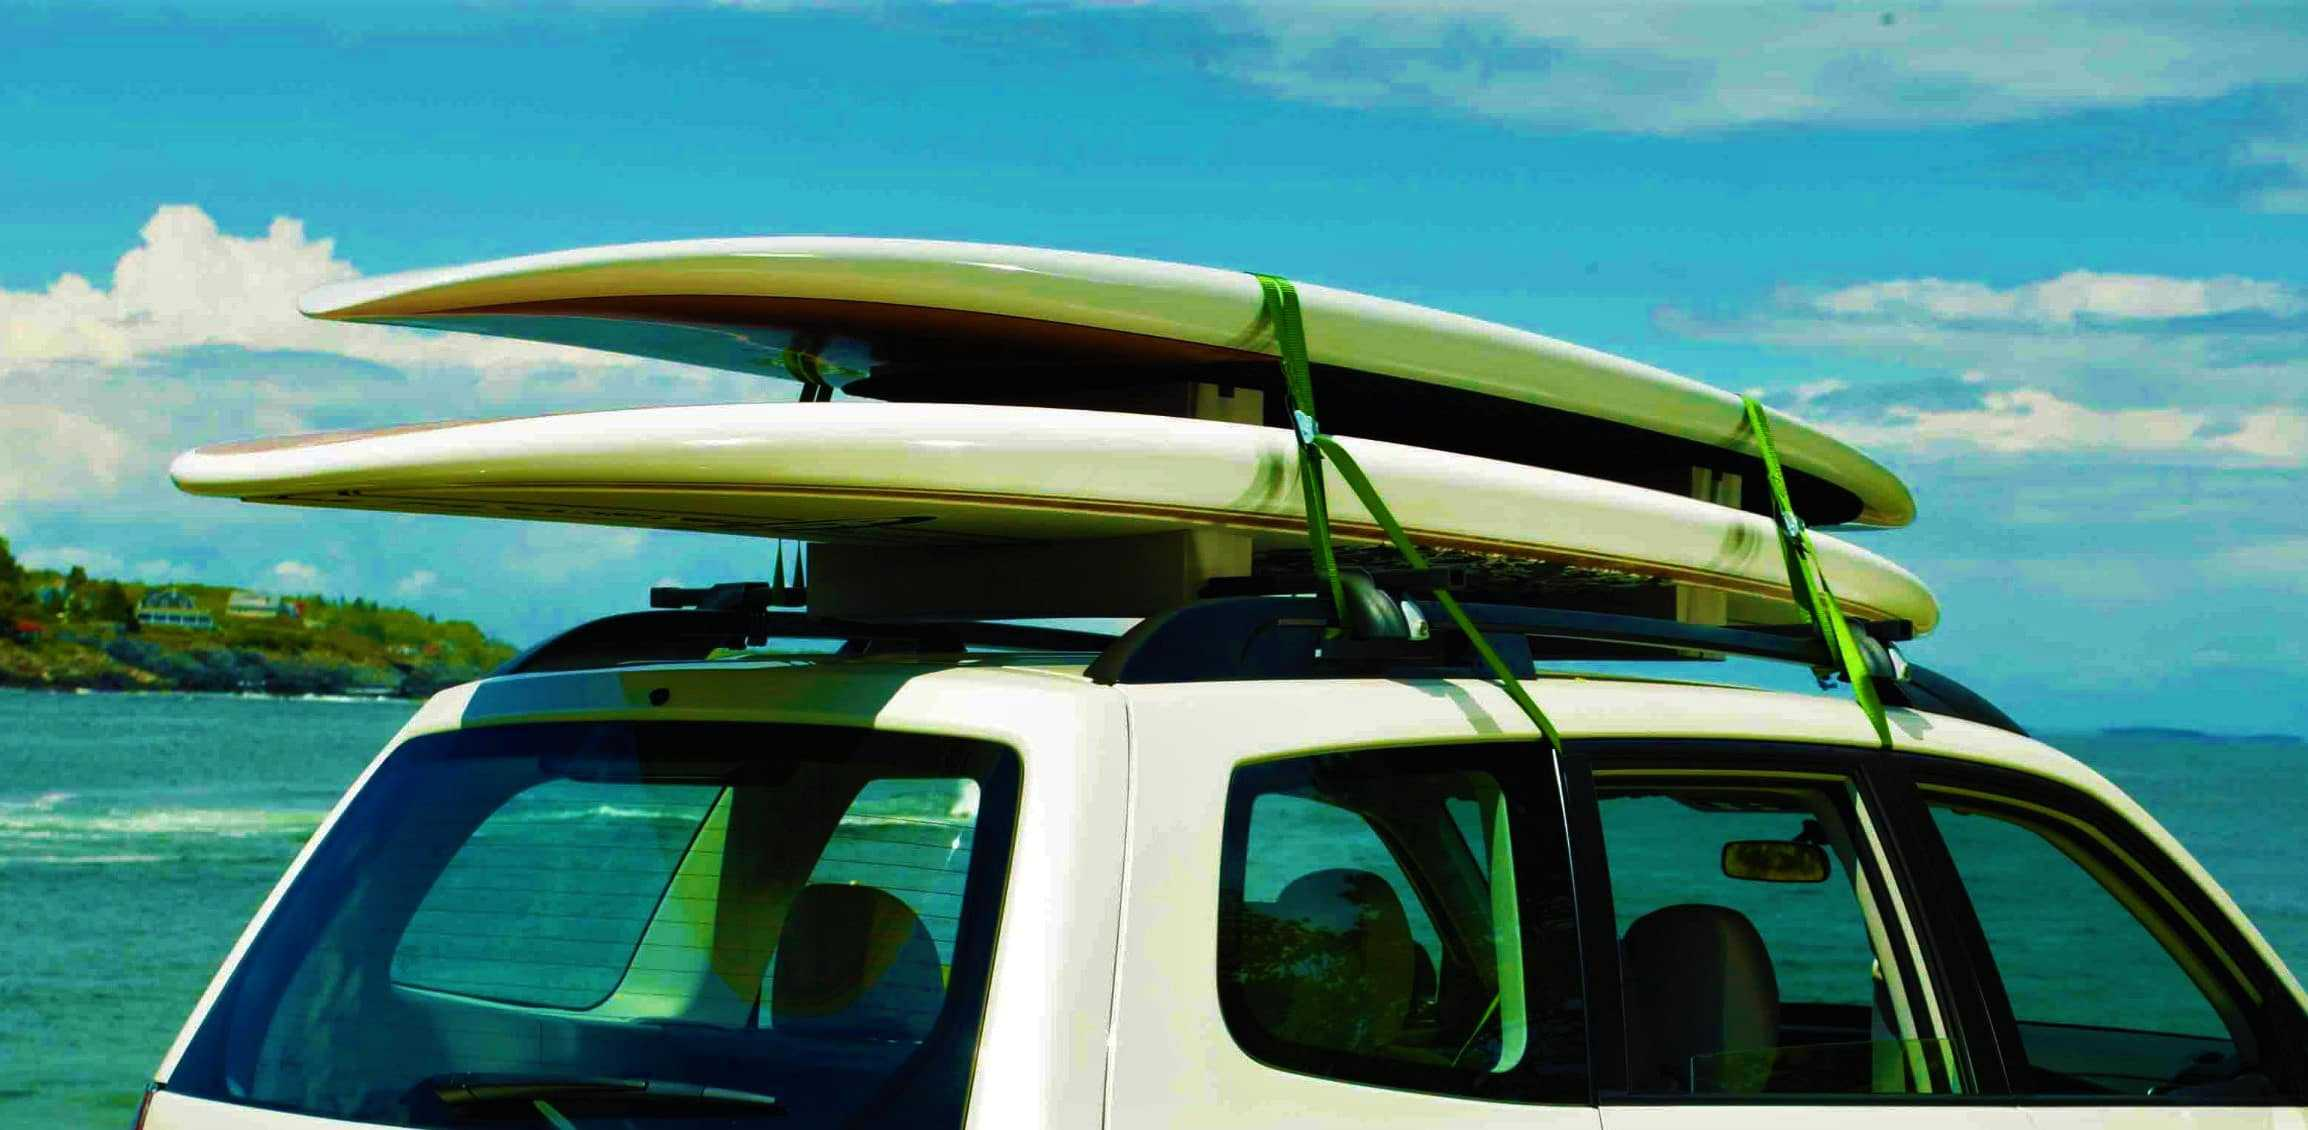 How To Transport A Paddle Board Or Stay Home Like A Loser The Seasoned Surfer